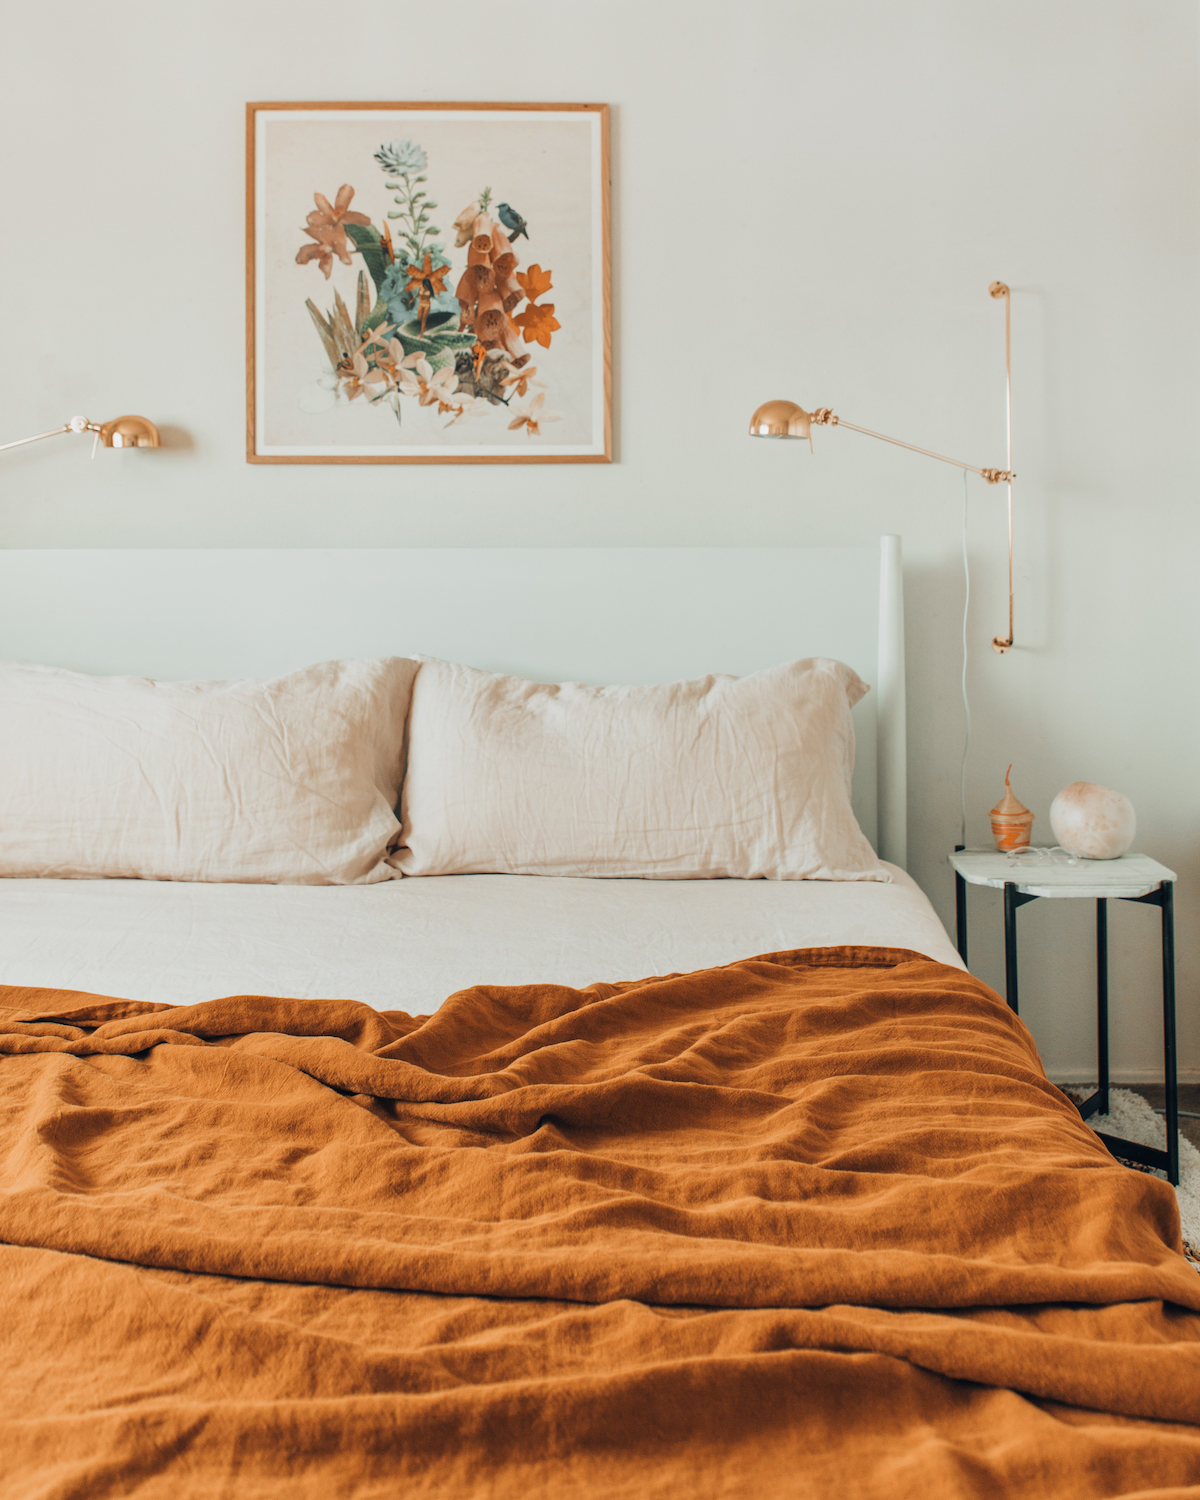 Burnt orange bedspread in an otherwise white room